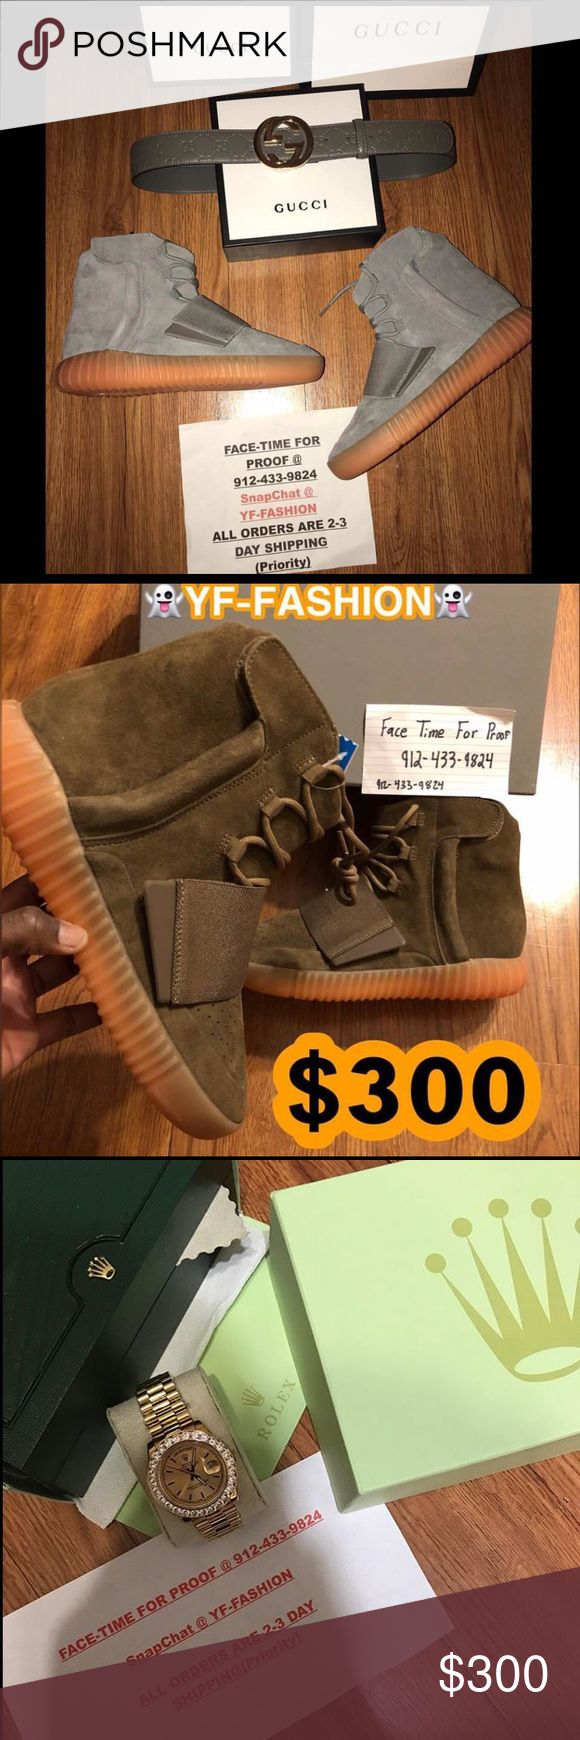 🔥👀MULTIPLE ITEMS POSTED👀👀VIEW ALL PICS💯💯 🔌I HAVE MORE ITEMS THEN WHATS POSTED 👻SnapChat: YF-Fashion  🔌text or call me @912-433-9824  (text me for the LINK TO MY SITE) 🔌FaceTime For Proof  🔌CONTACT ME BEFORE PAYING  🔌100% Authentic Items  🔌Priority Shipping (2 Days)  🔌912-433-9824 ‼️I DO NOT SALE OVER POSH‼️ Yeezy Shoes Sneakers